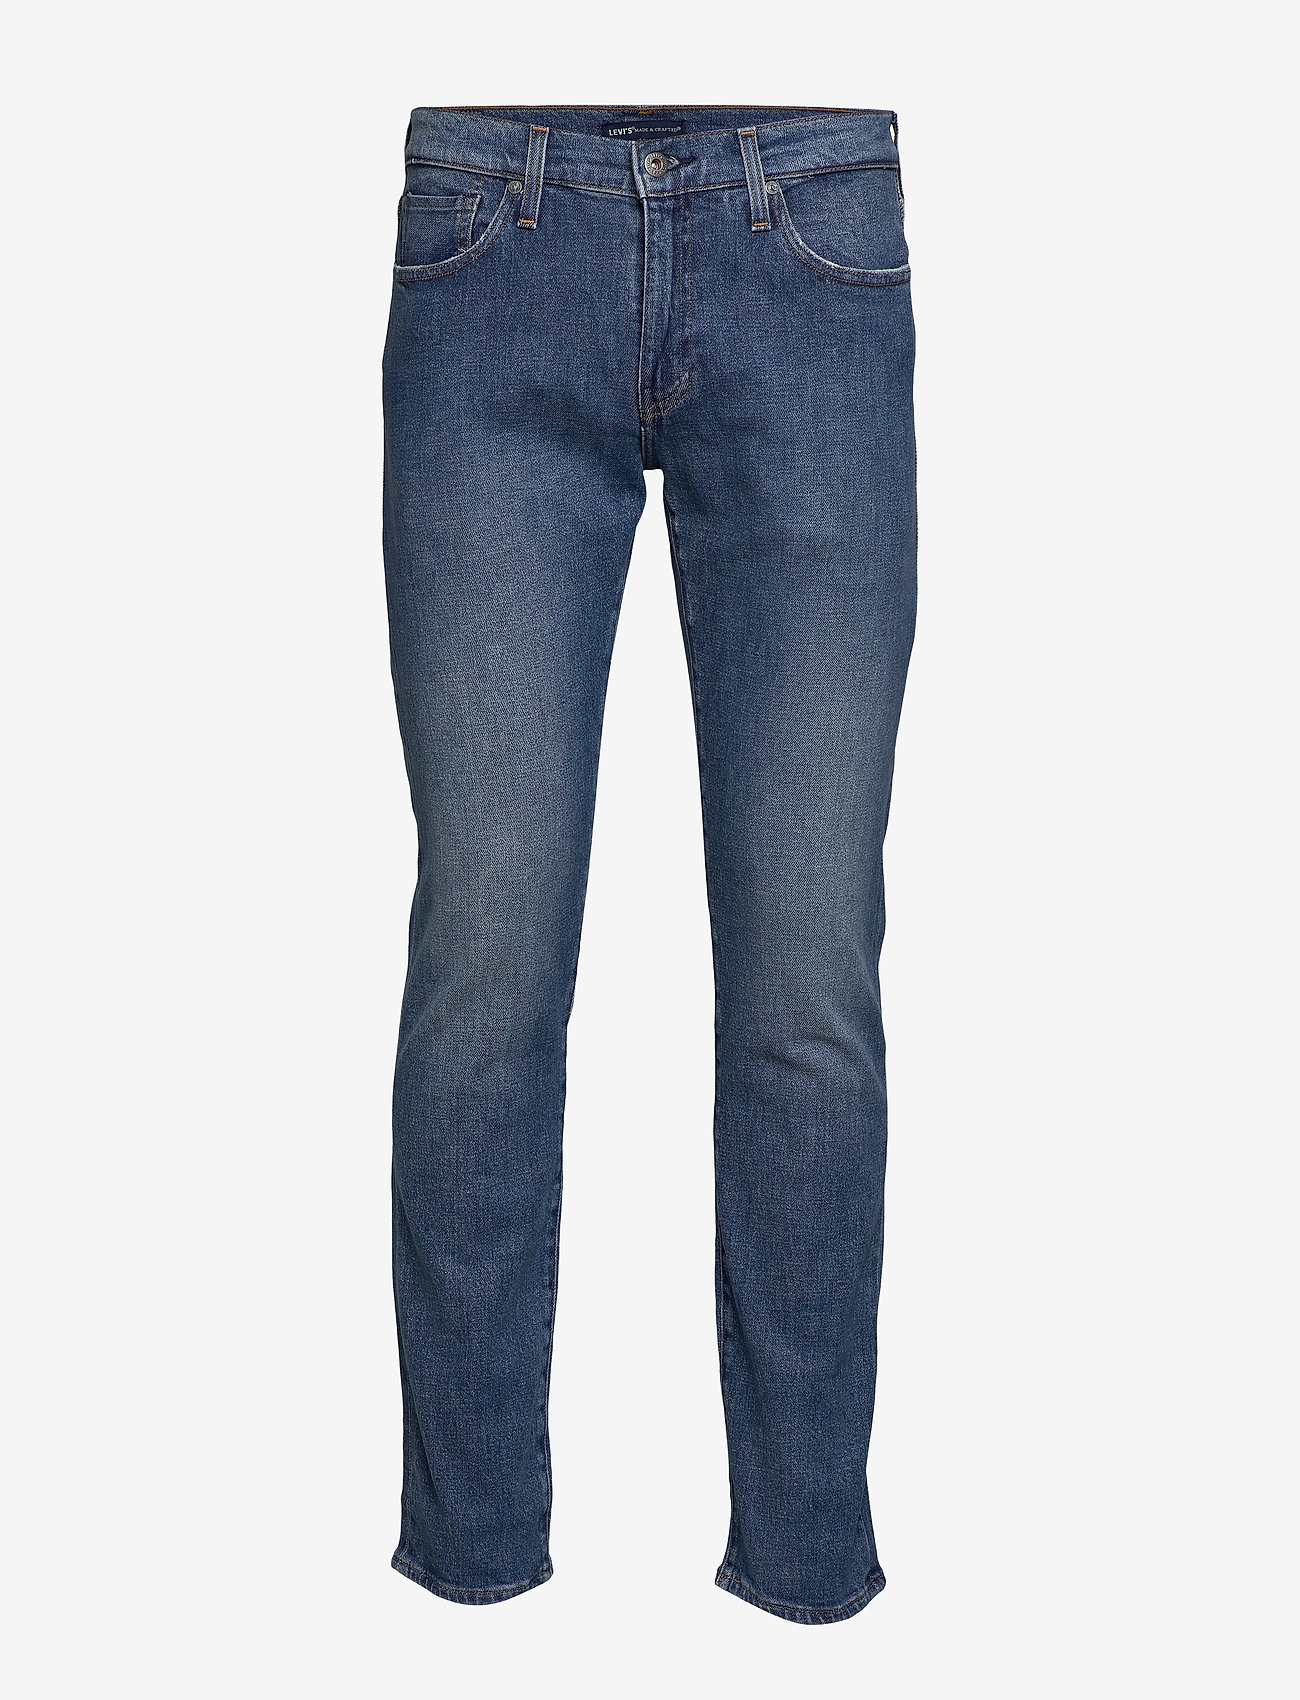 Levi's Made & Crafted - LMC 511 LMC DIEGO - slim jeans - med indigo - worn in